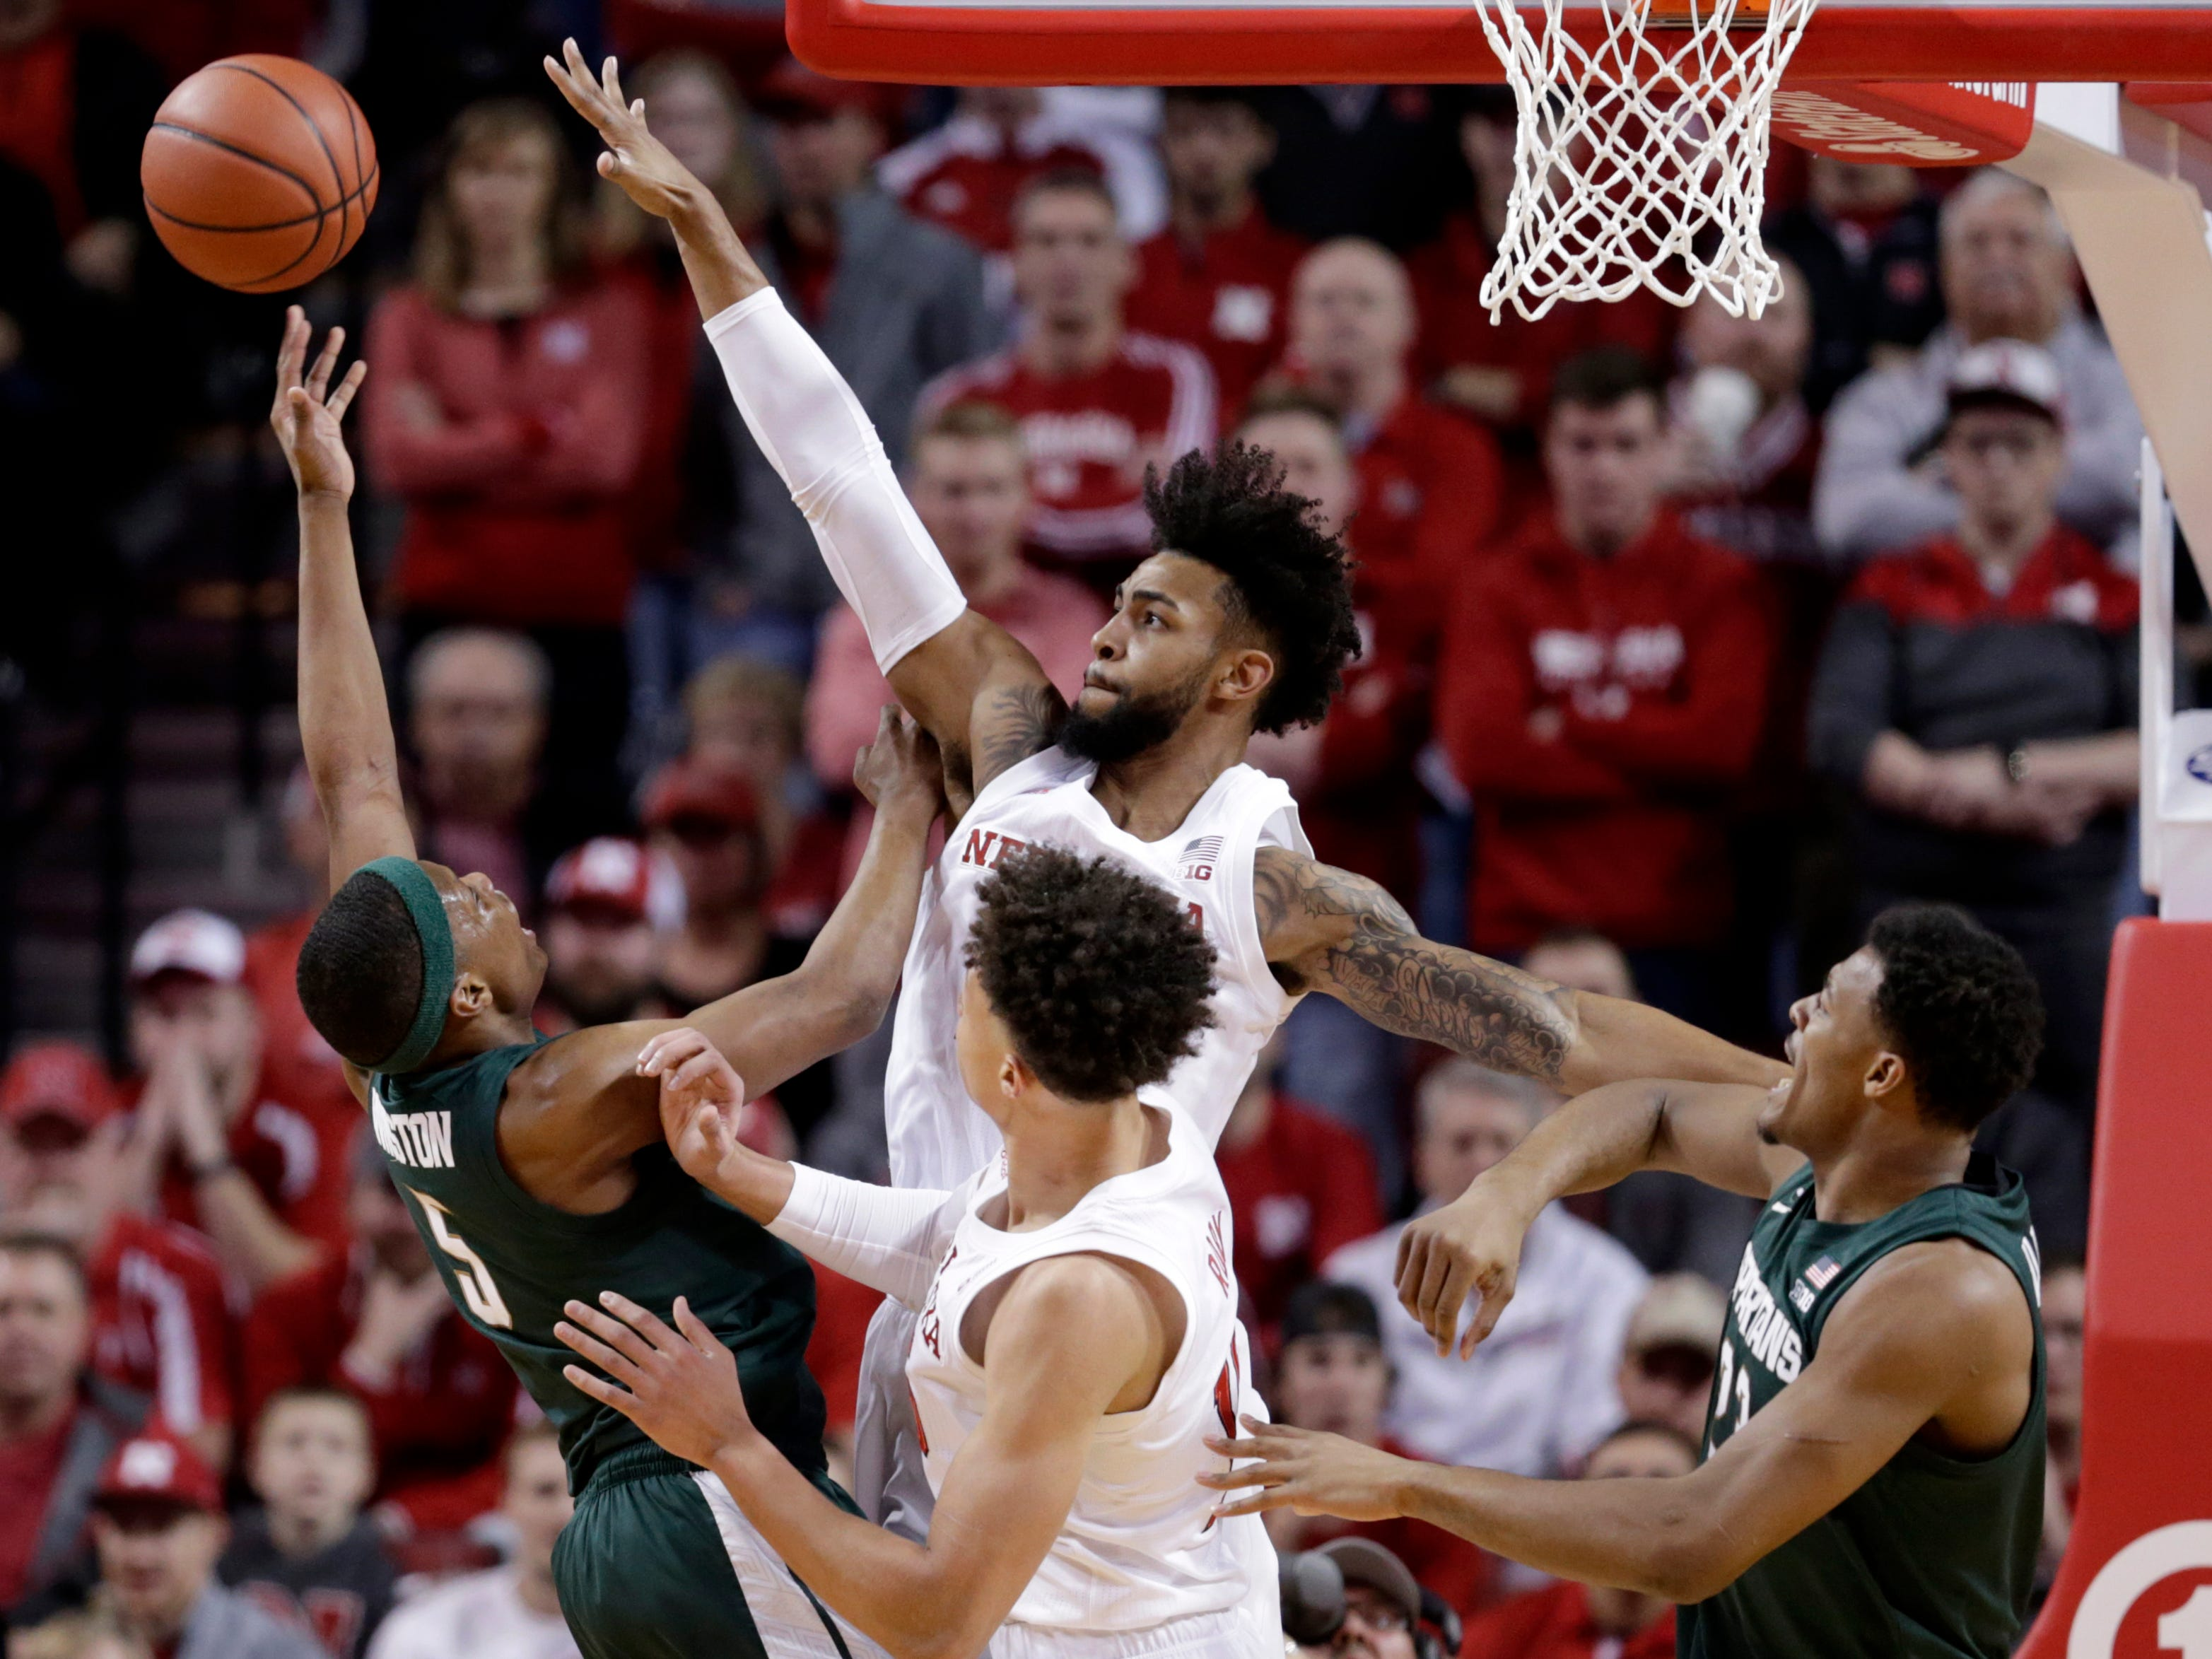 Nebraska's Isaac Copeland Jr., center rear, tries to block a shot by Michigan State's Cassius Winston (5), as Xavier Tillman, right, and Isaiah Roby, center front, watch, during the first half of an NCAA college basketball game in Lincoln, Neb., Thursday, Jan. 17, 2019.